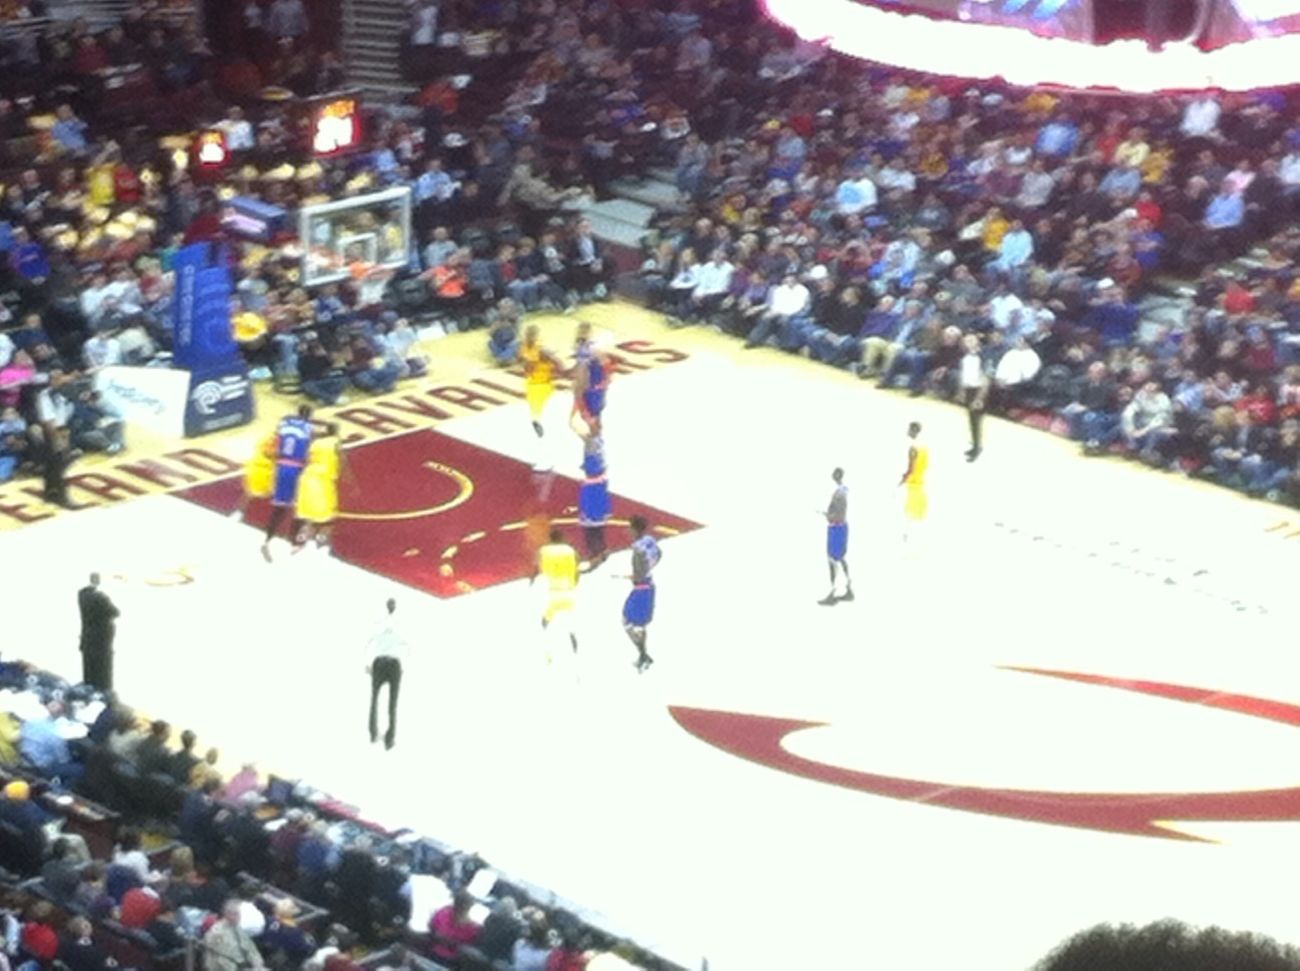 Cavs-Knicks game earlier #melo #uncledrew